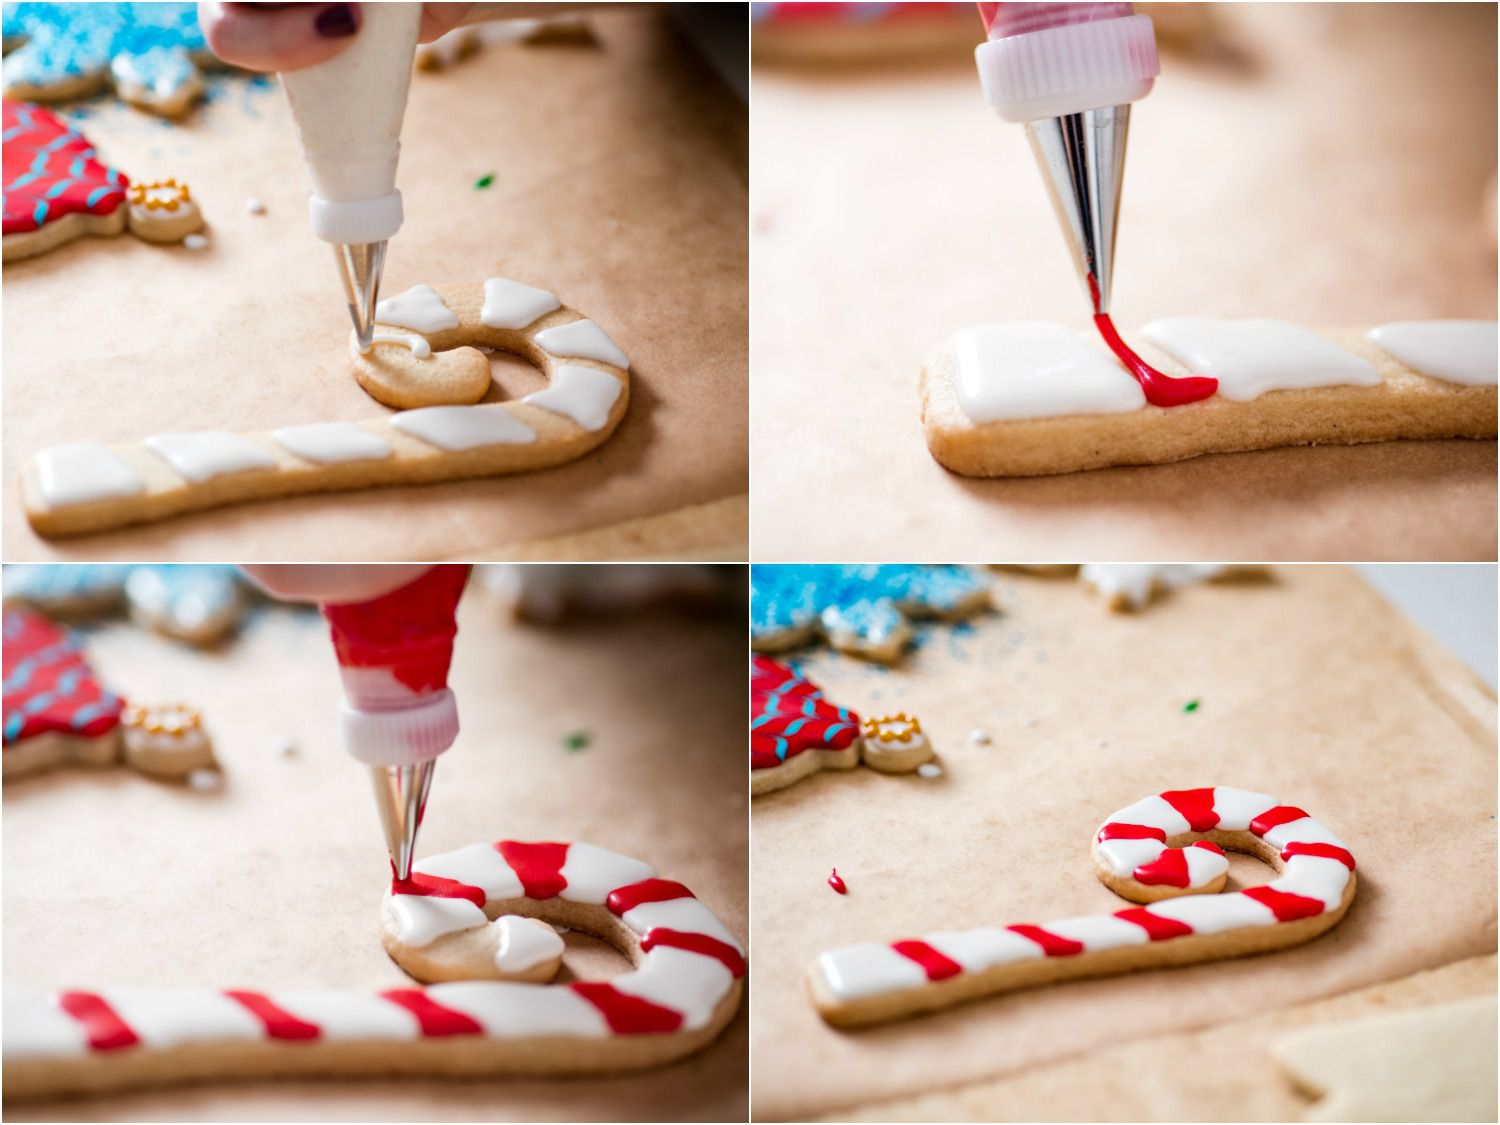 20161207-holiday-cookie-decorating-icing-sugar-cookies-vicky-wasik-side-by-side-collage.jpg